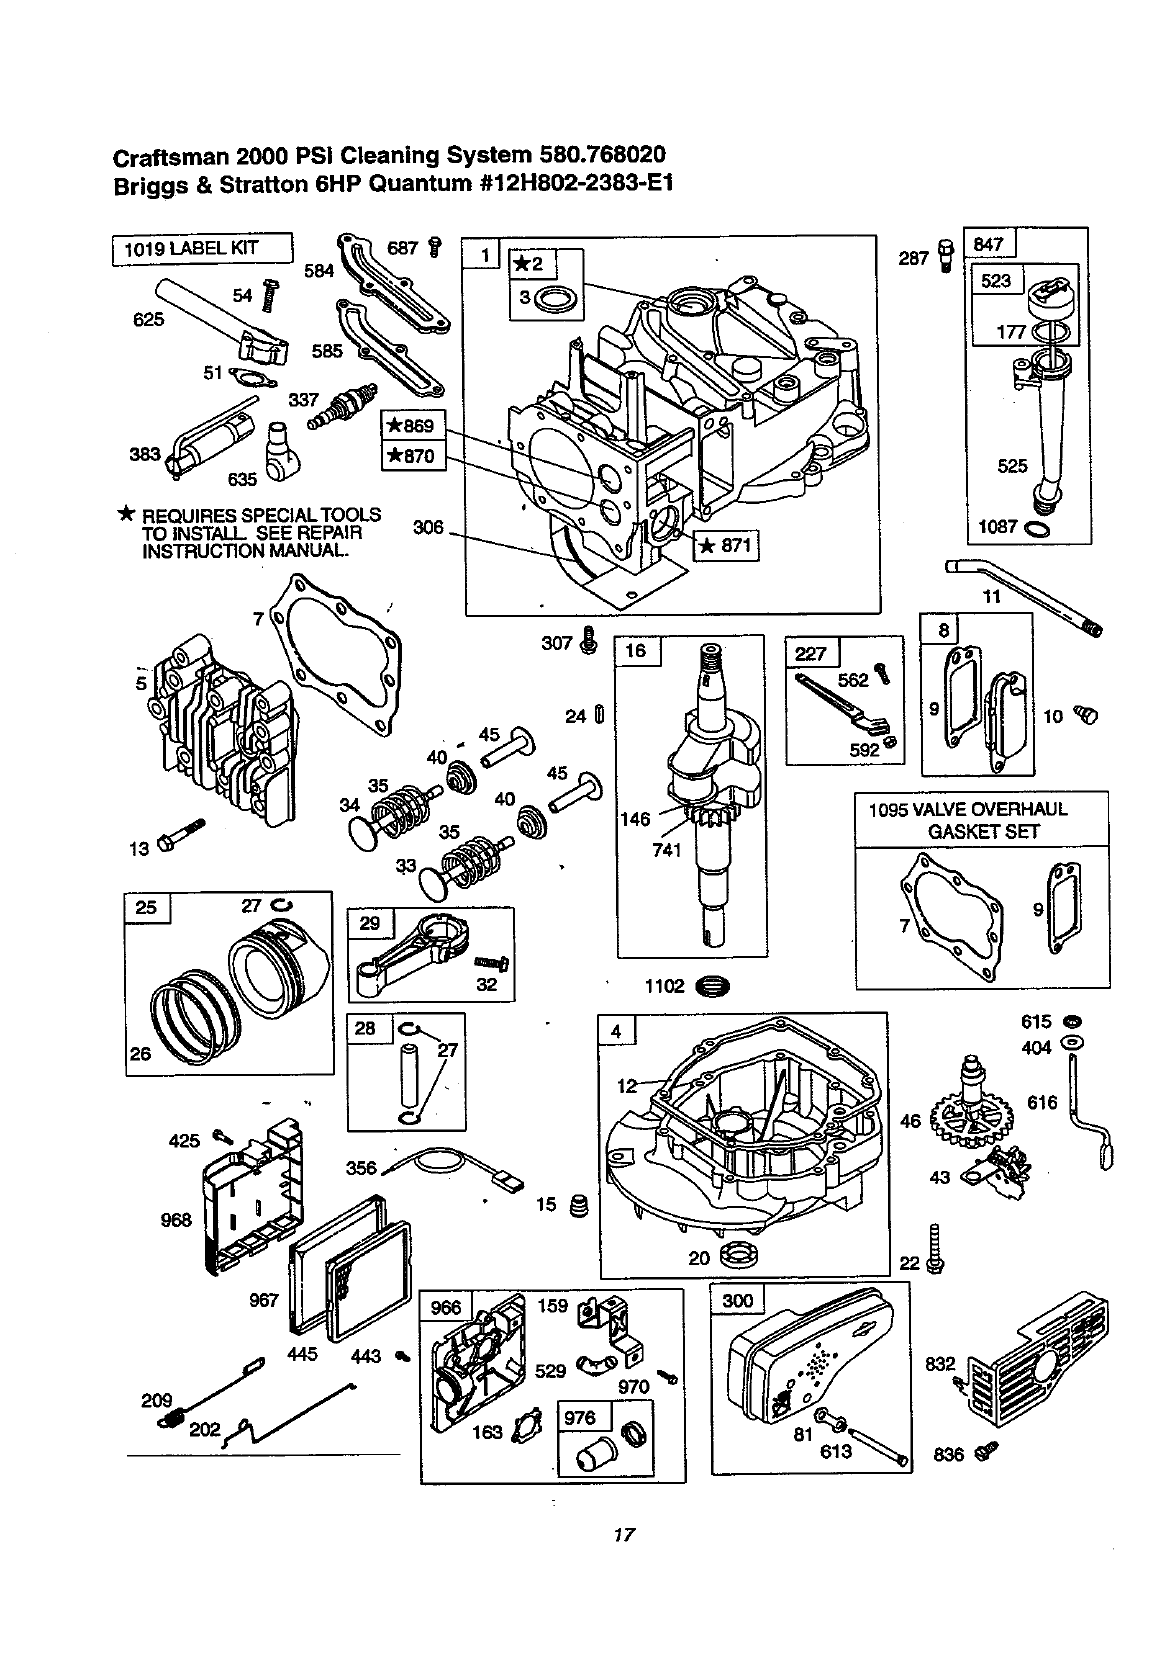 Page 17 of Craftsman Pressure Washer 580 User Guide